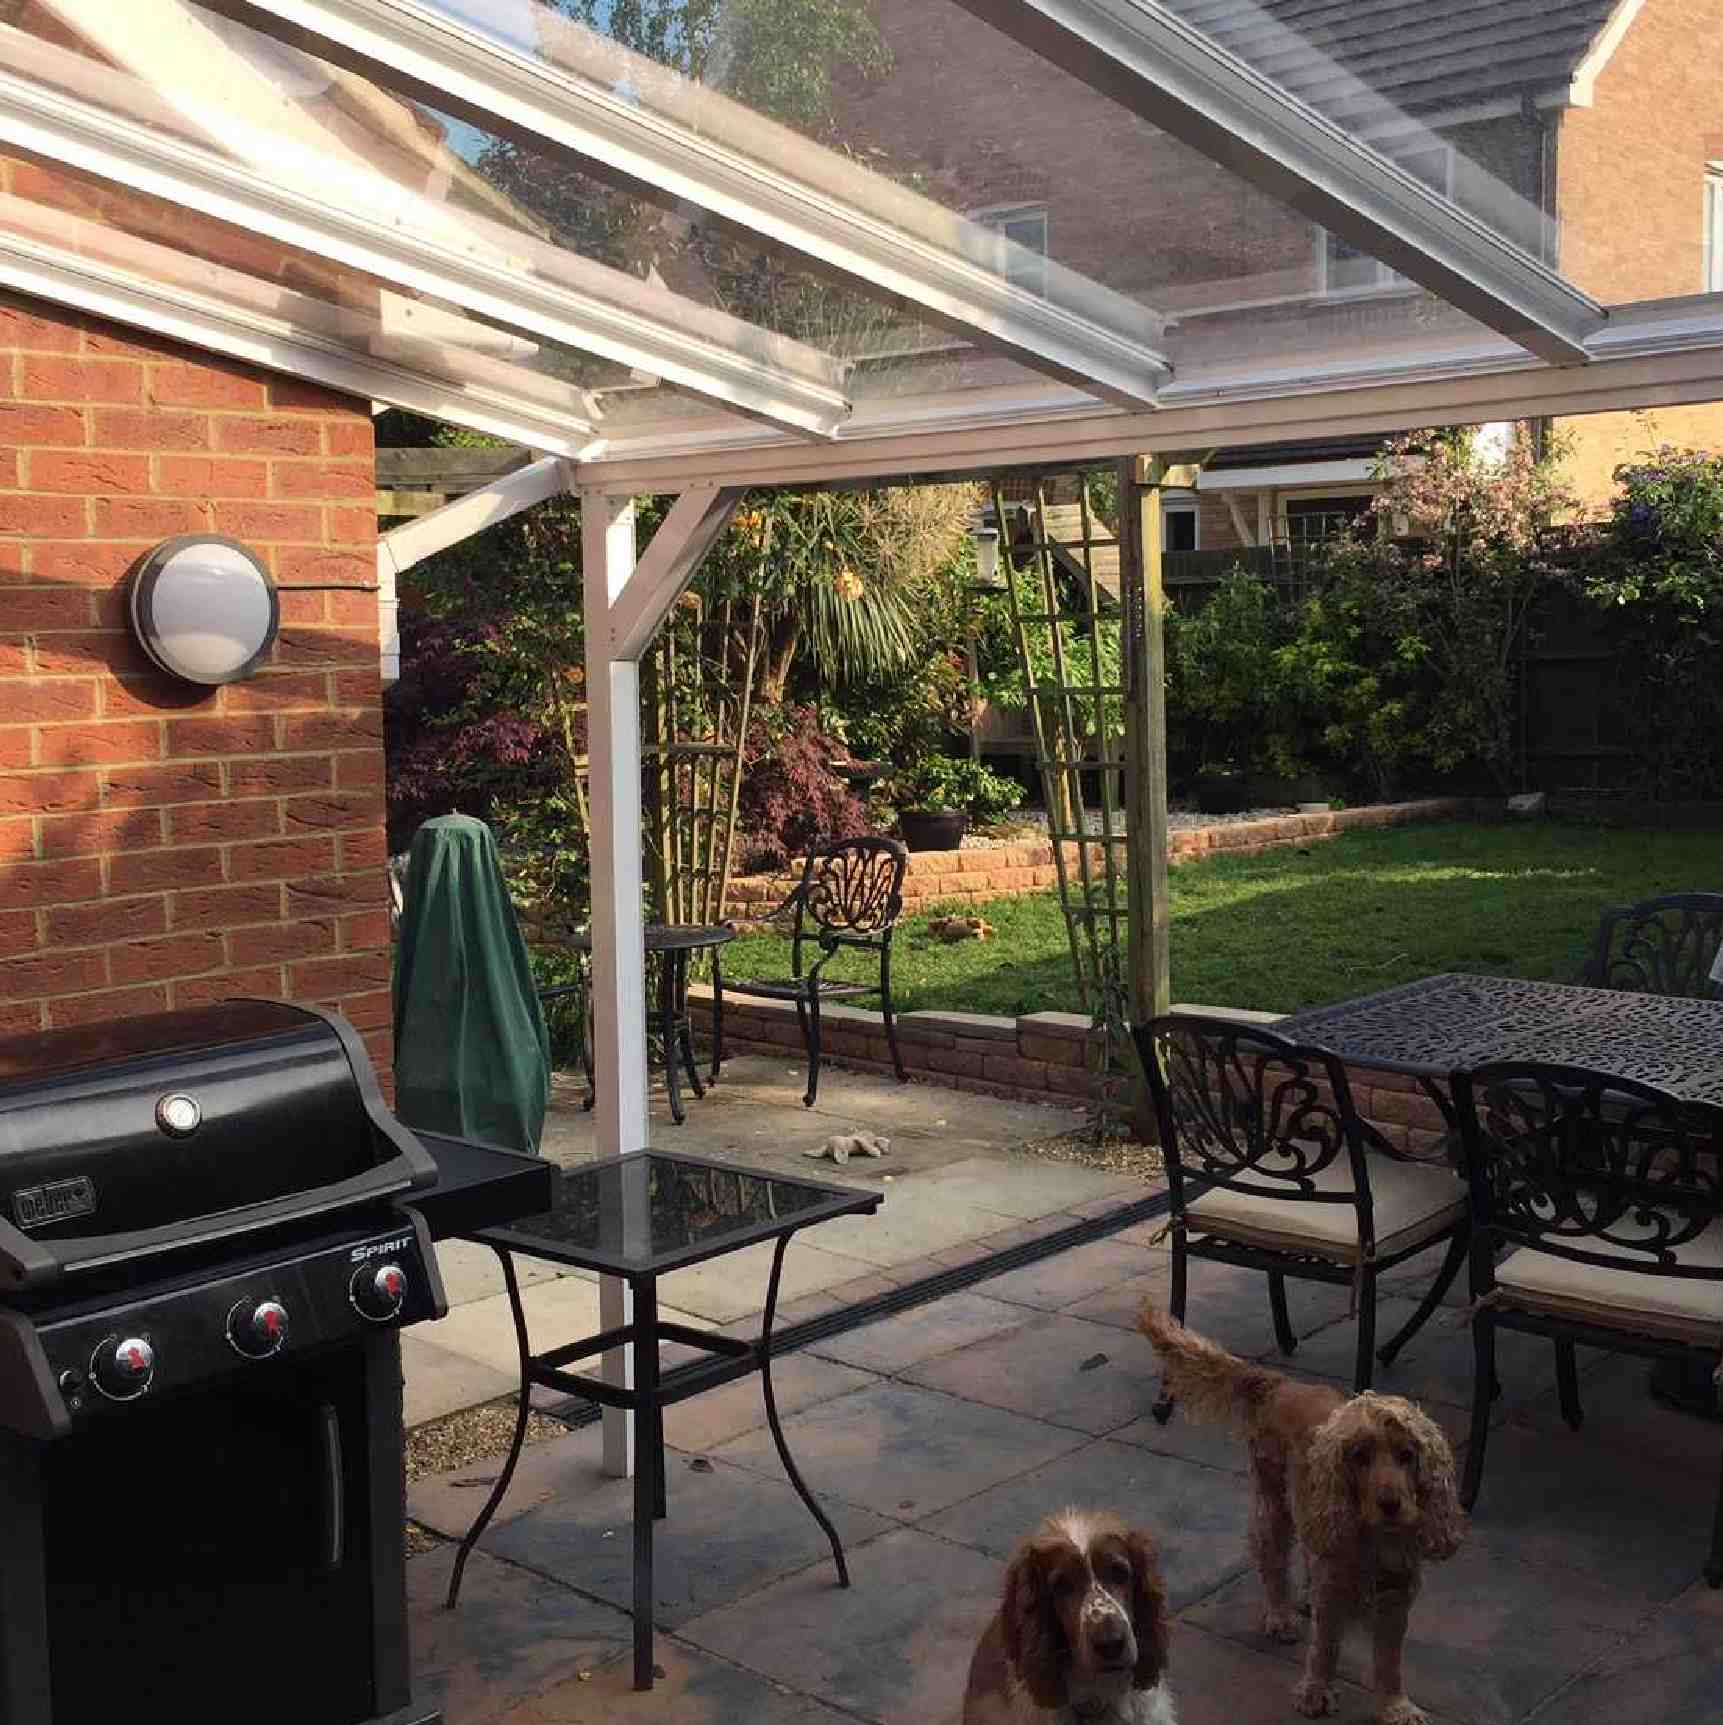 Omega Verandah with 16mm Polycarbonate Glazing - 2.1m (W) x 4.0m (P), (2) Supporting Posts